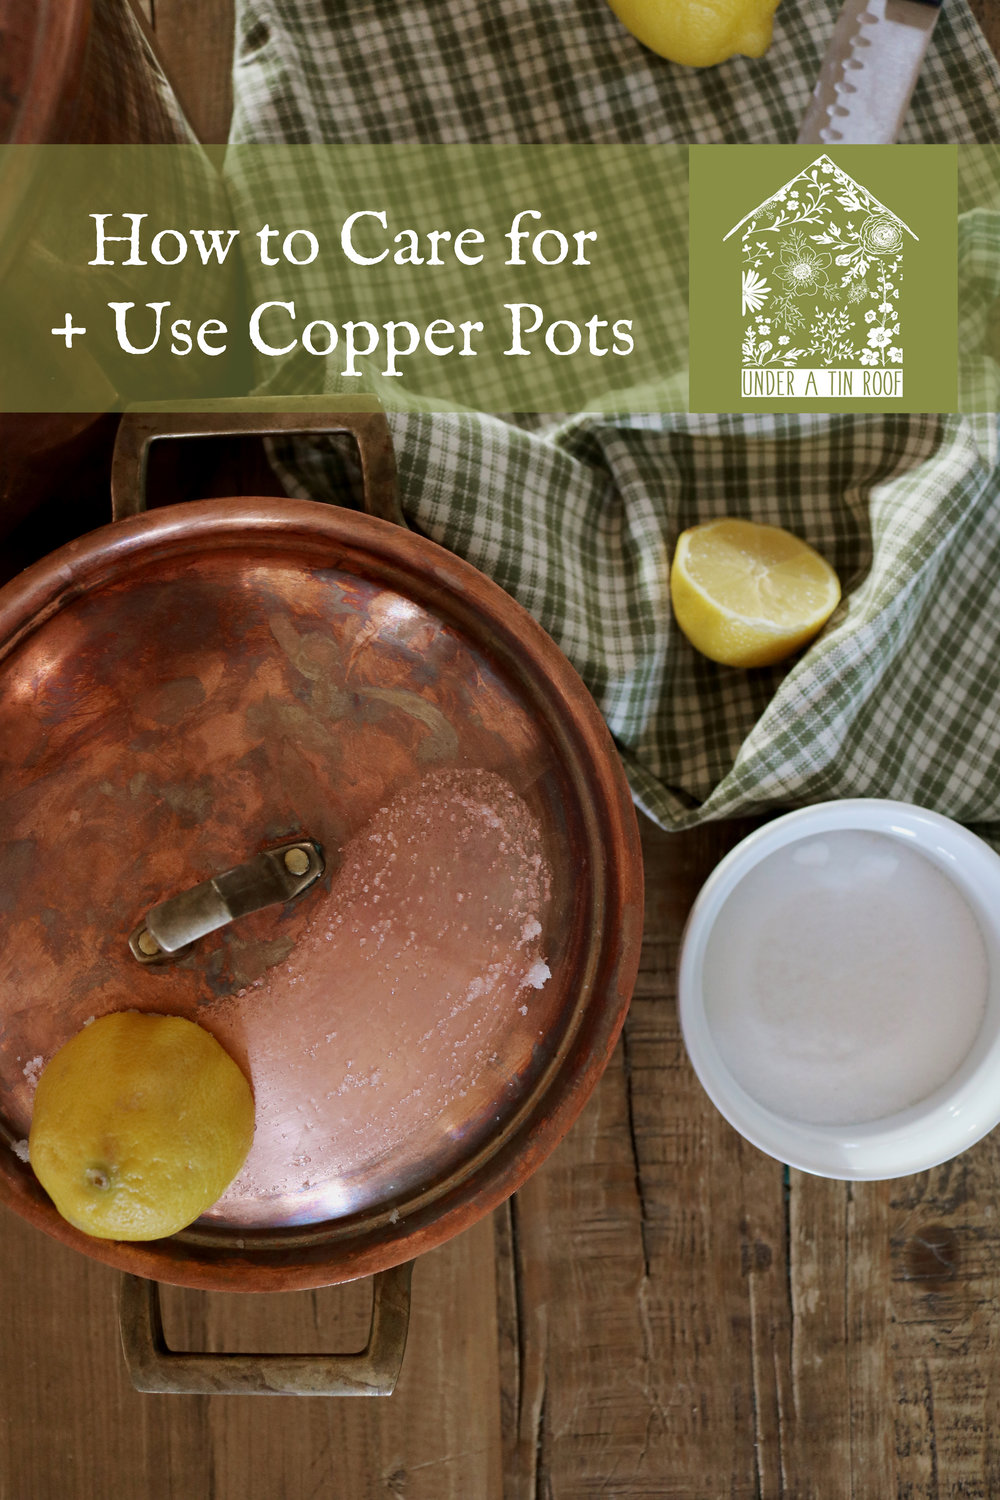 How to Care for and Use Copper Pots - Under A Tin Roof Blog